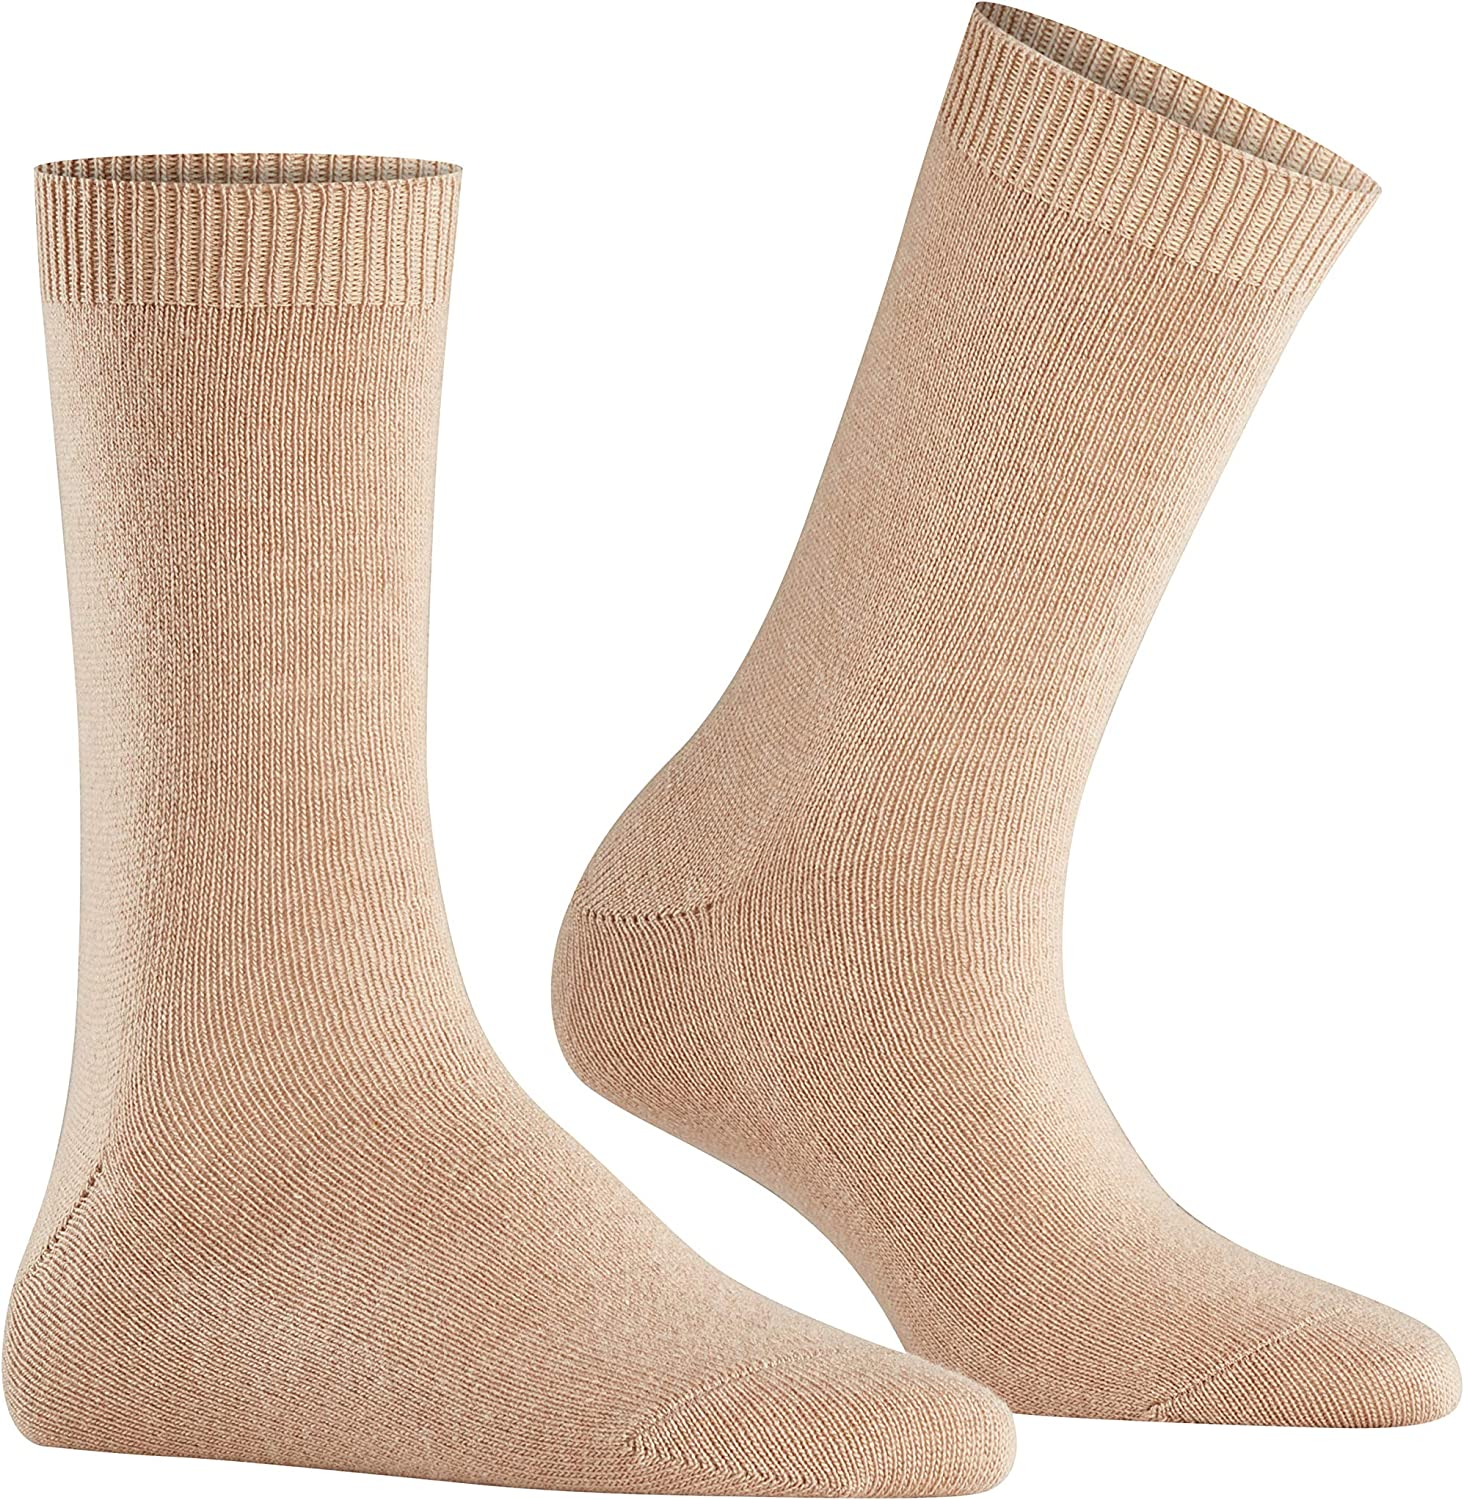 ankle support Cushioned anti blister breathable EU 35-42 In Grey or Navy 1 Pair quick dry Merino Wool Blend UK sizes 2.5-8 warm FALKE Womens Stabilizing Wool Hiking Socks